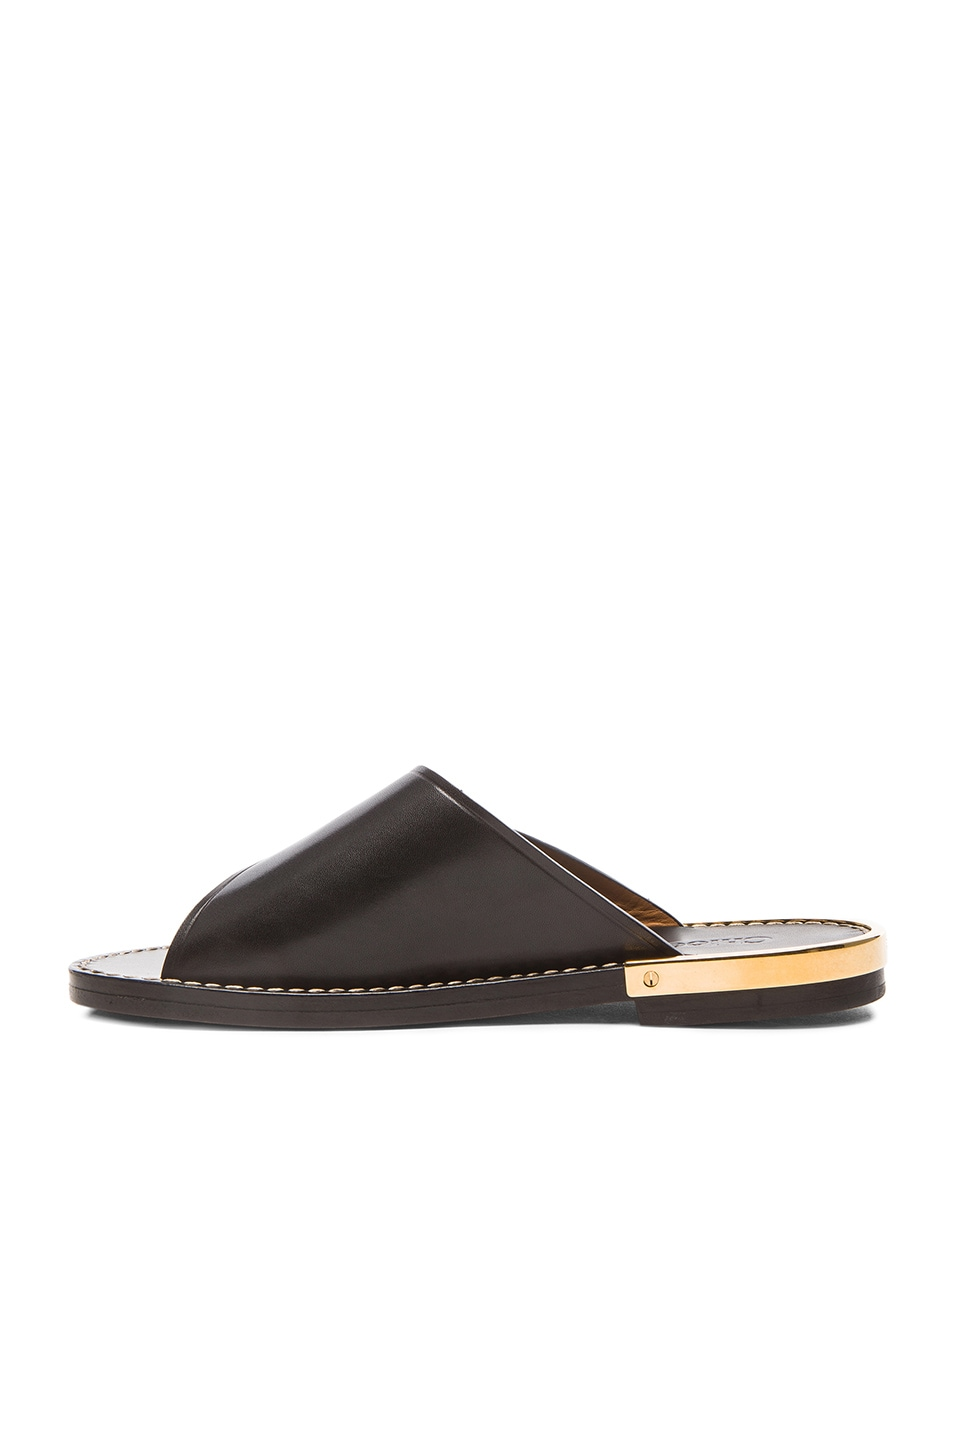 Image 5 of Chloe Leather Buckle Sandals in Black